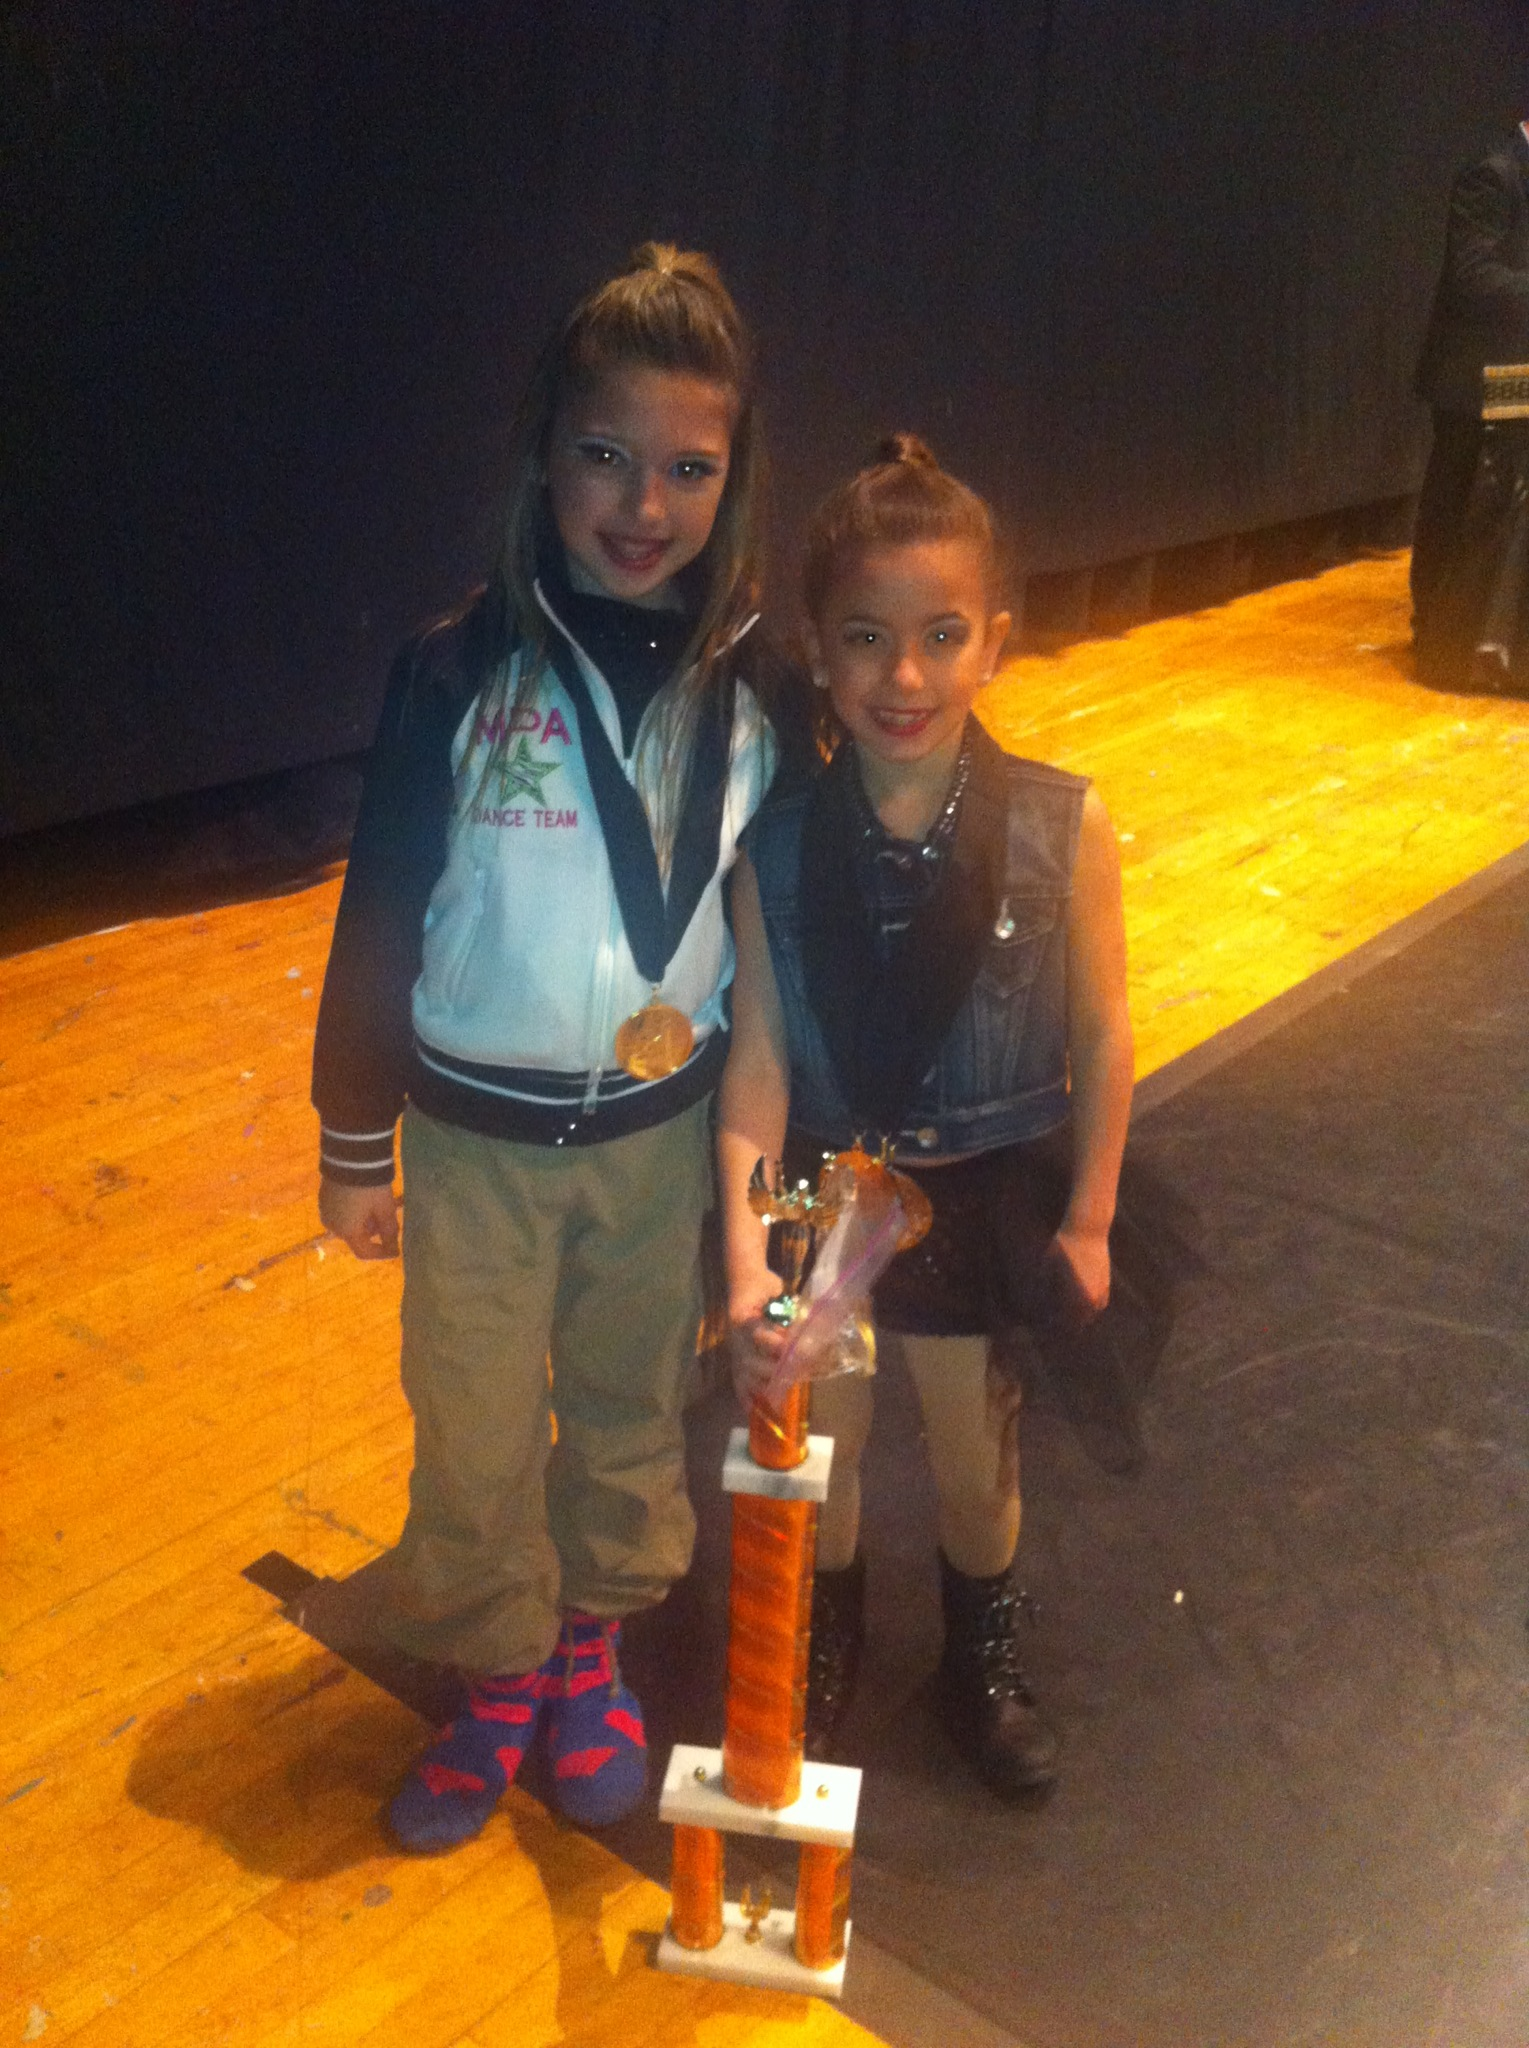 GiaNina-and-Mia-Duo-with-trophy.jpg